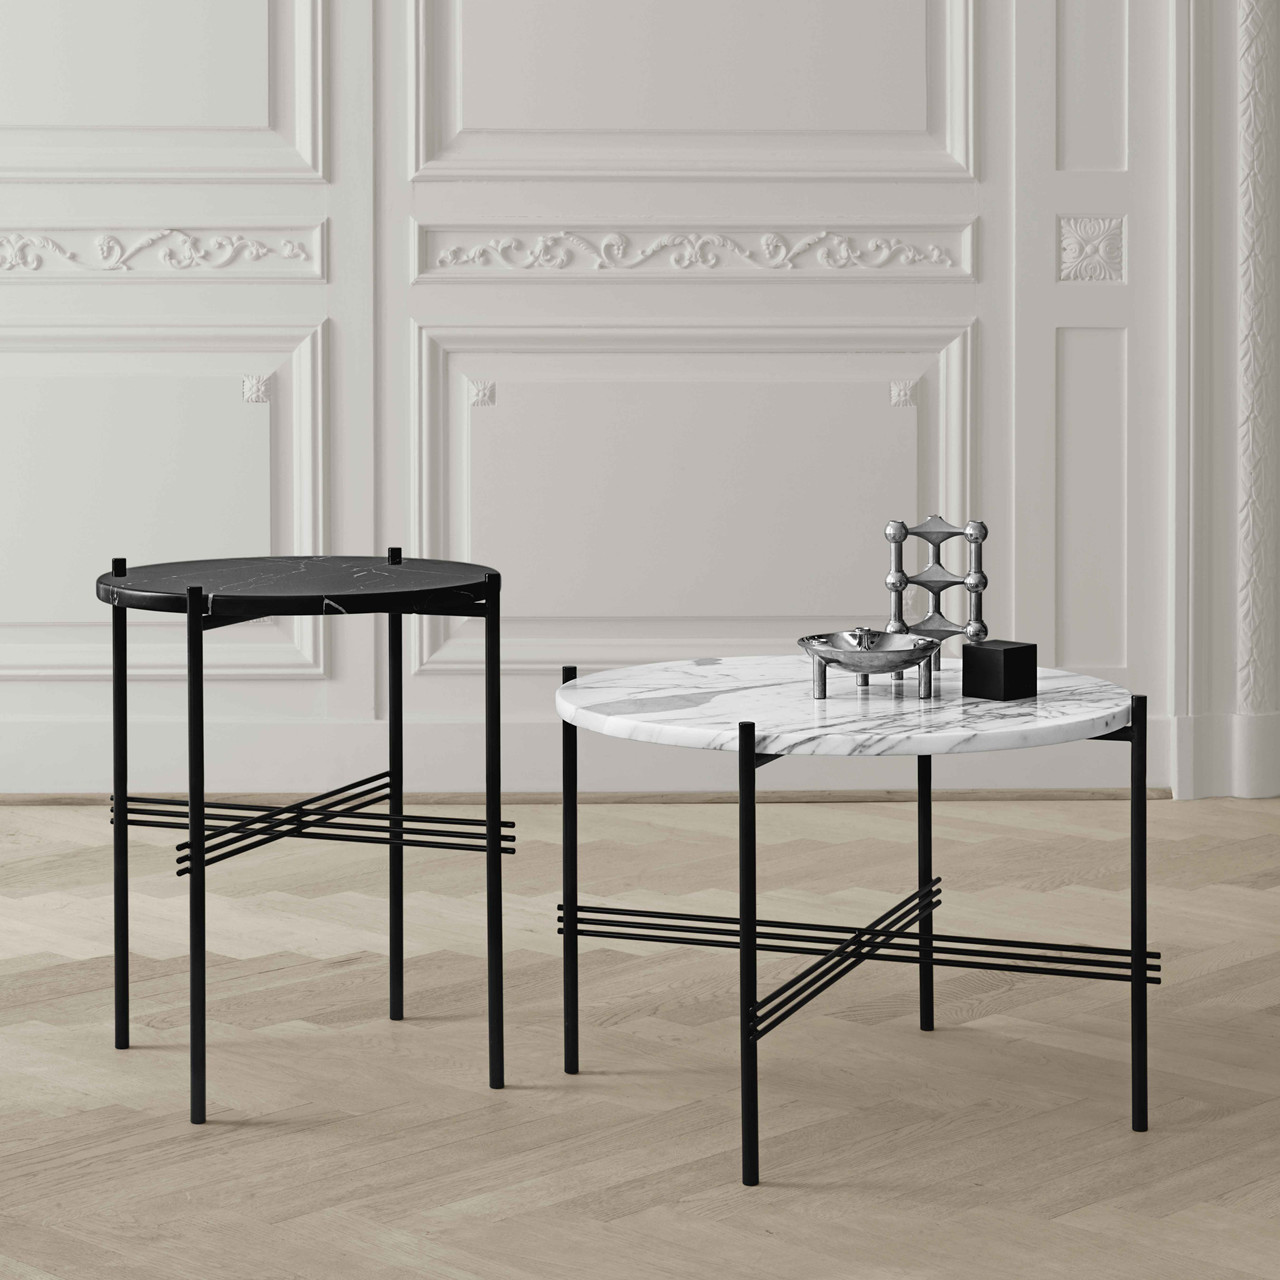 Gubi Ts Table Livingshopdk